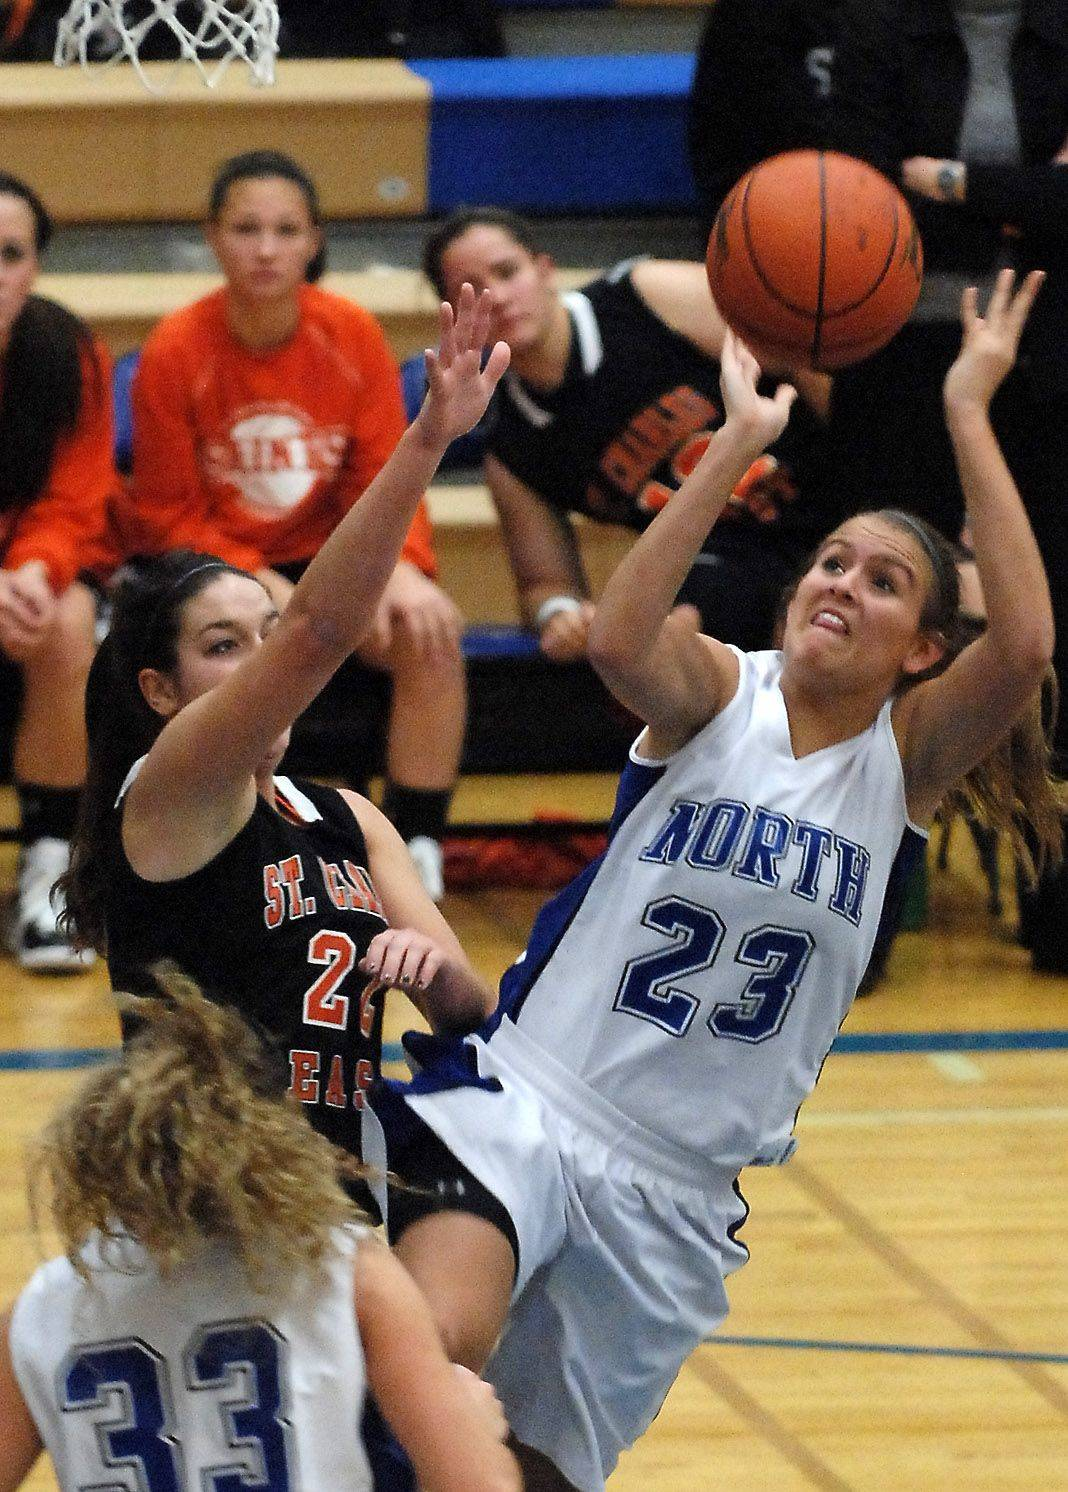 St. Charles North forward Leah Horton puts up a shot over St. Charles East guard Dani Asquini.